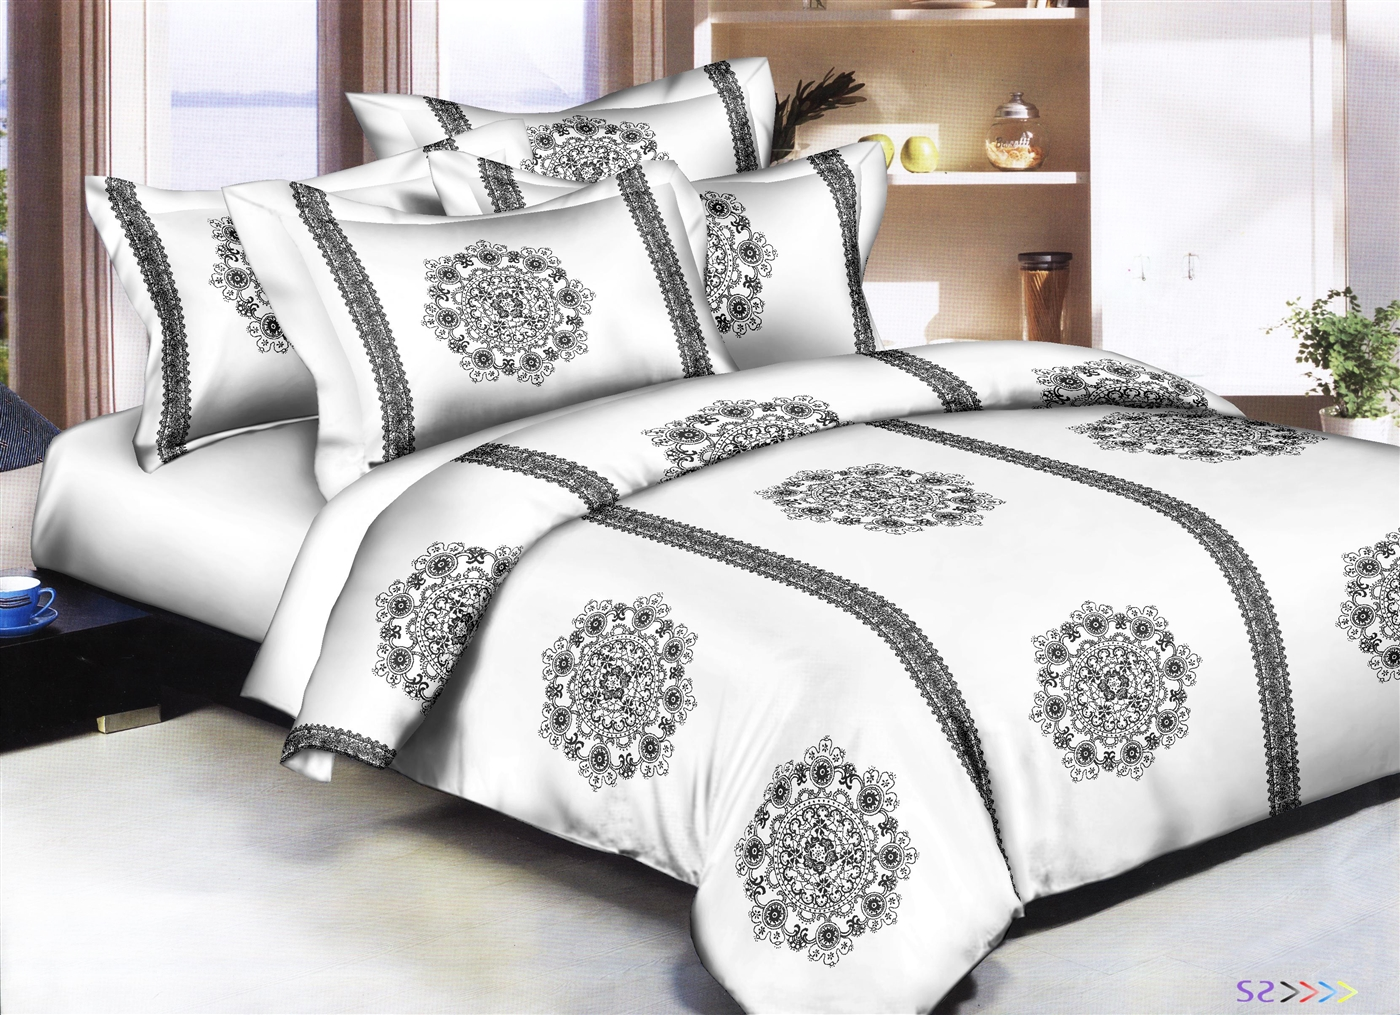 Better Bed Collection: Lacey Dollies White 8PC Bedding Sets - 300 Thread Count